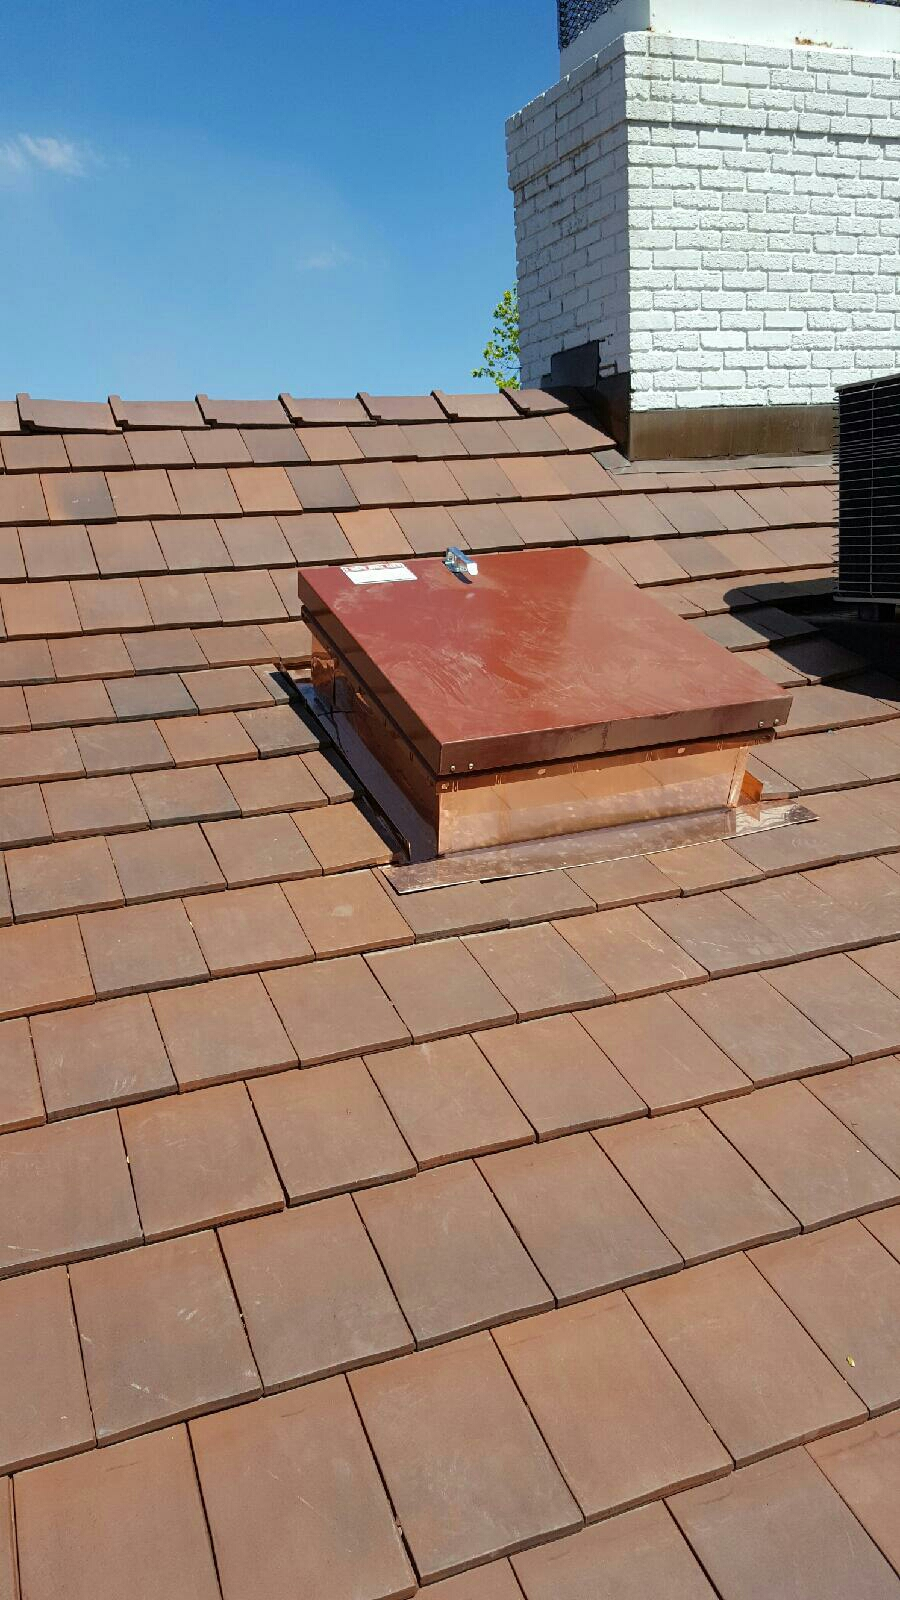 Saint Paul, MN - Framing and installing a Babcock roof hatch